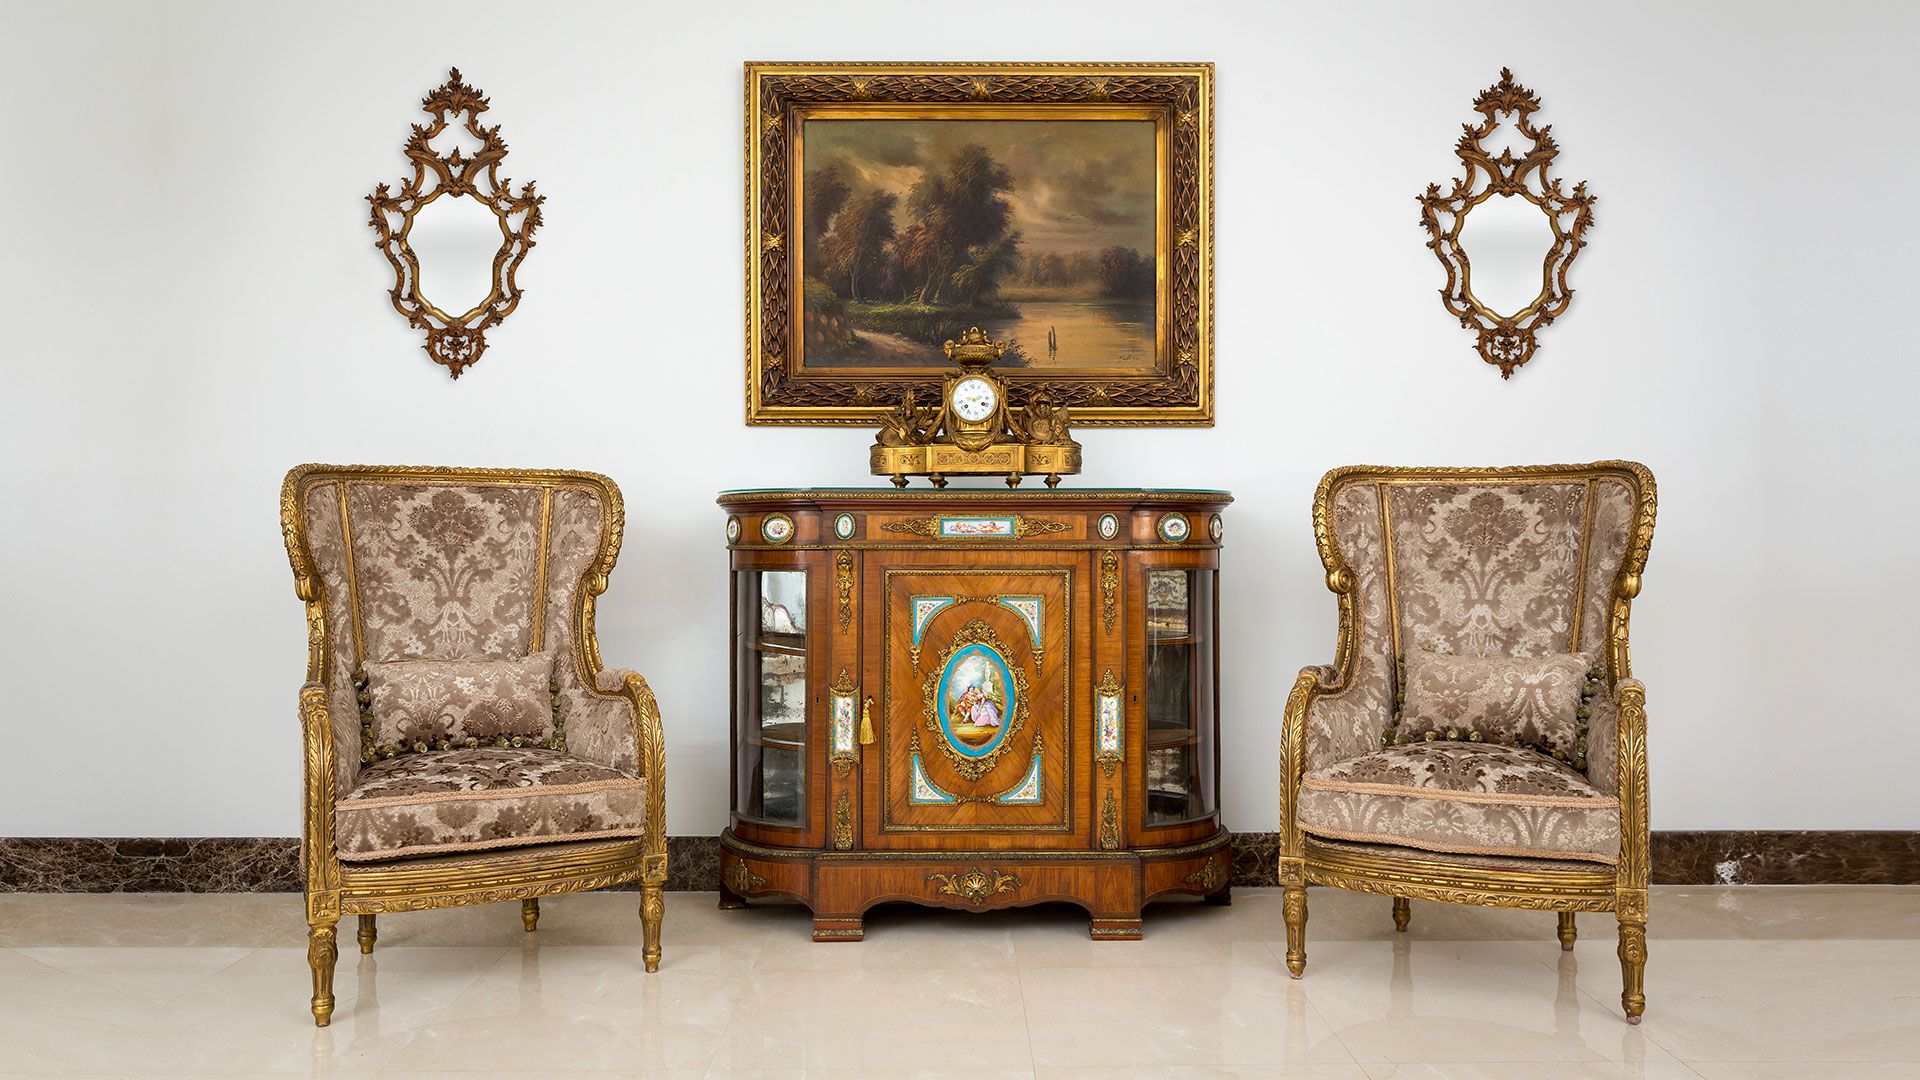 Beautiful Antique Furniture Collection Dubai UAE